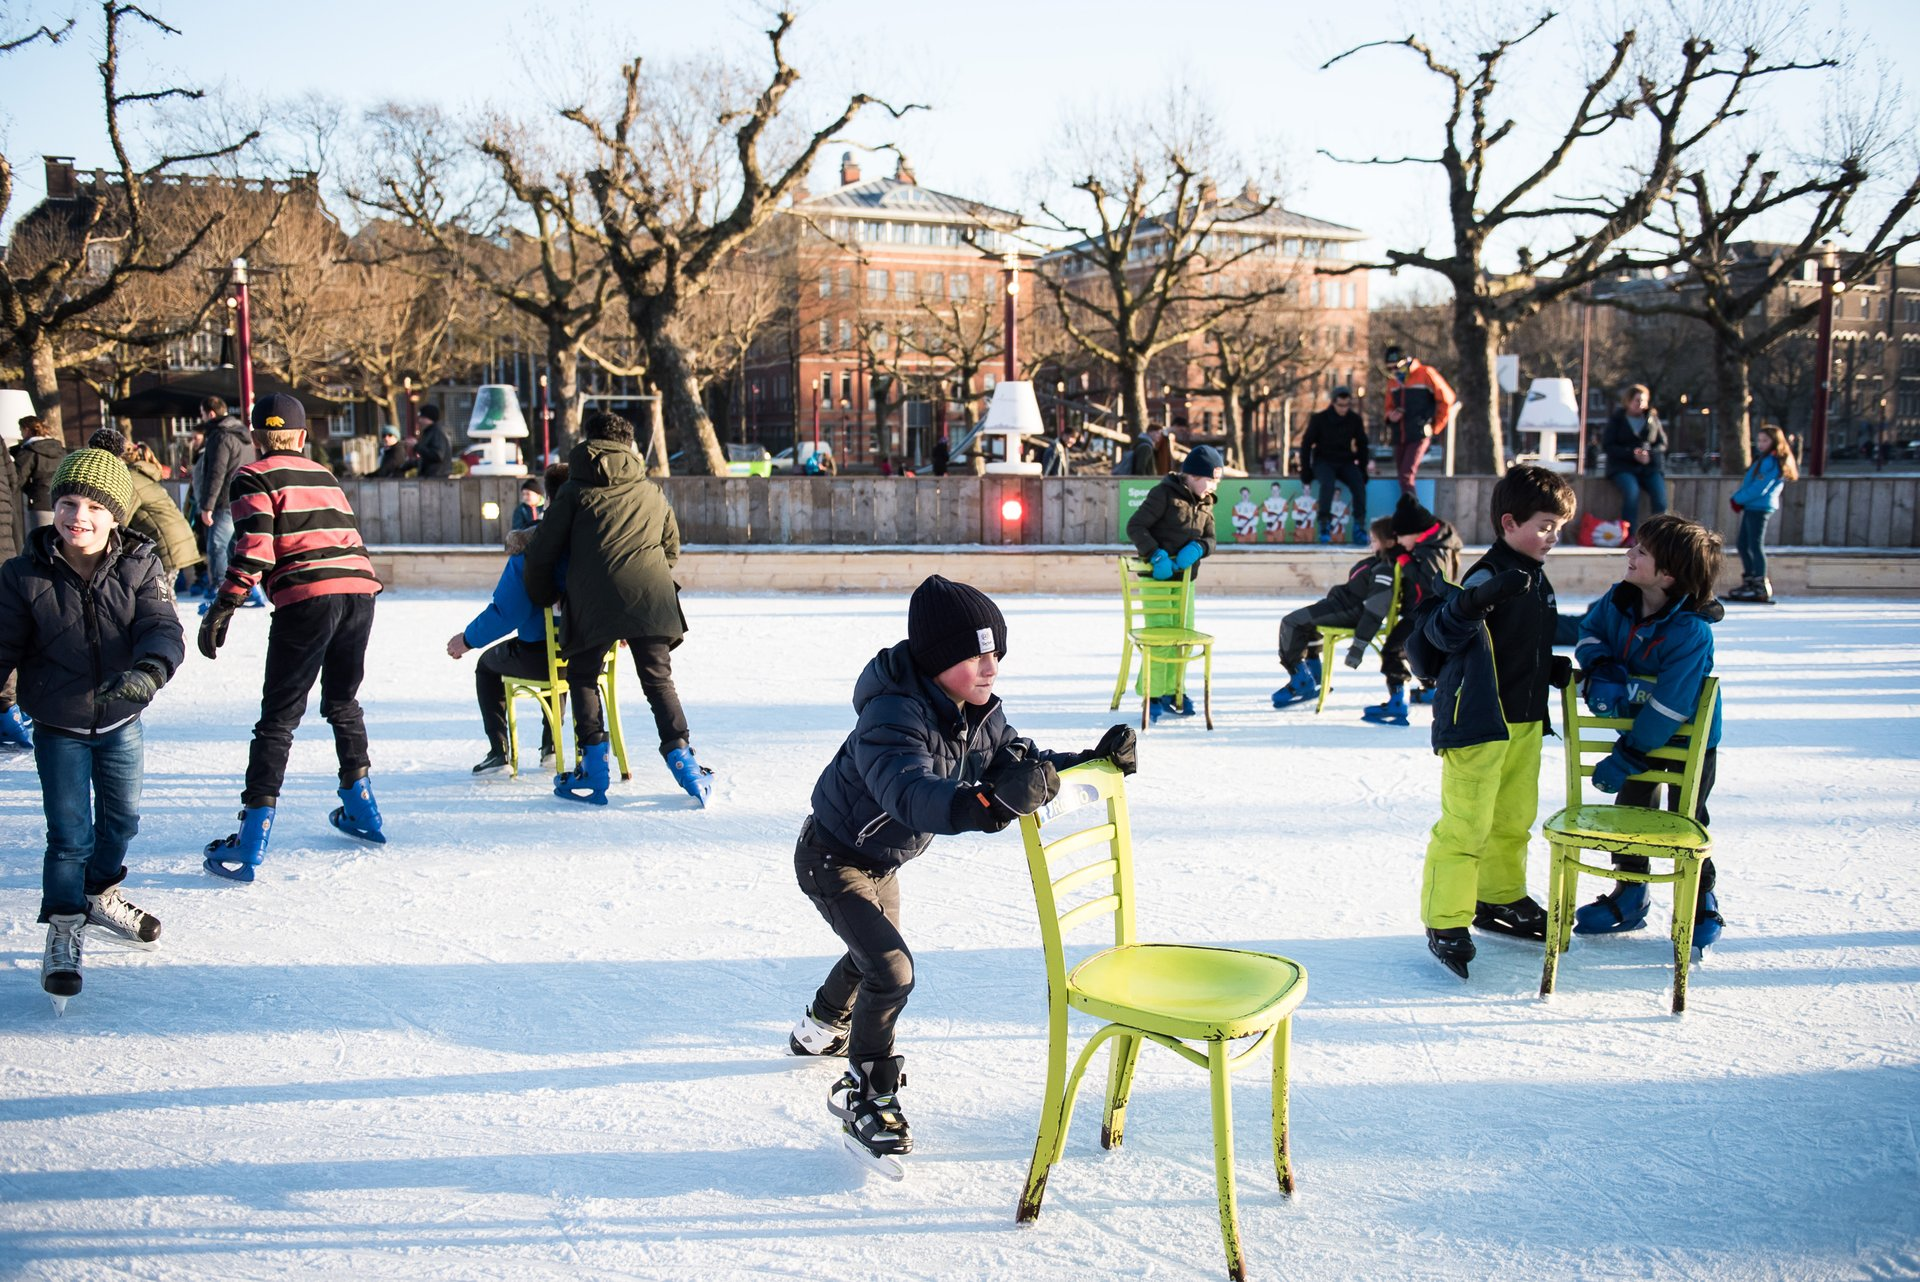 Ice*Amsterdam Ice Rink at Museumplein 2020